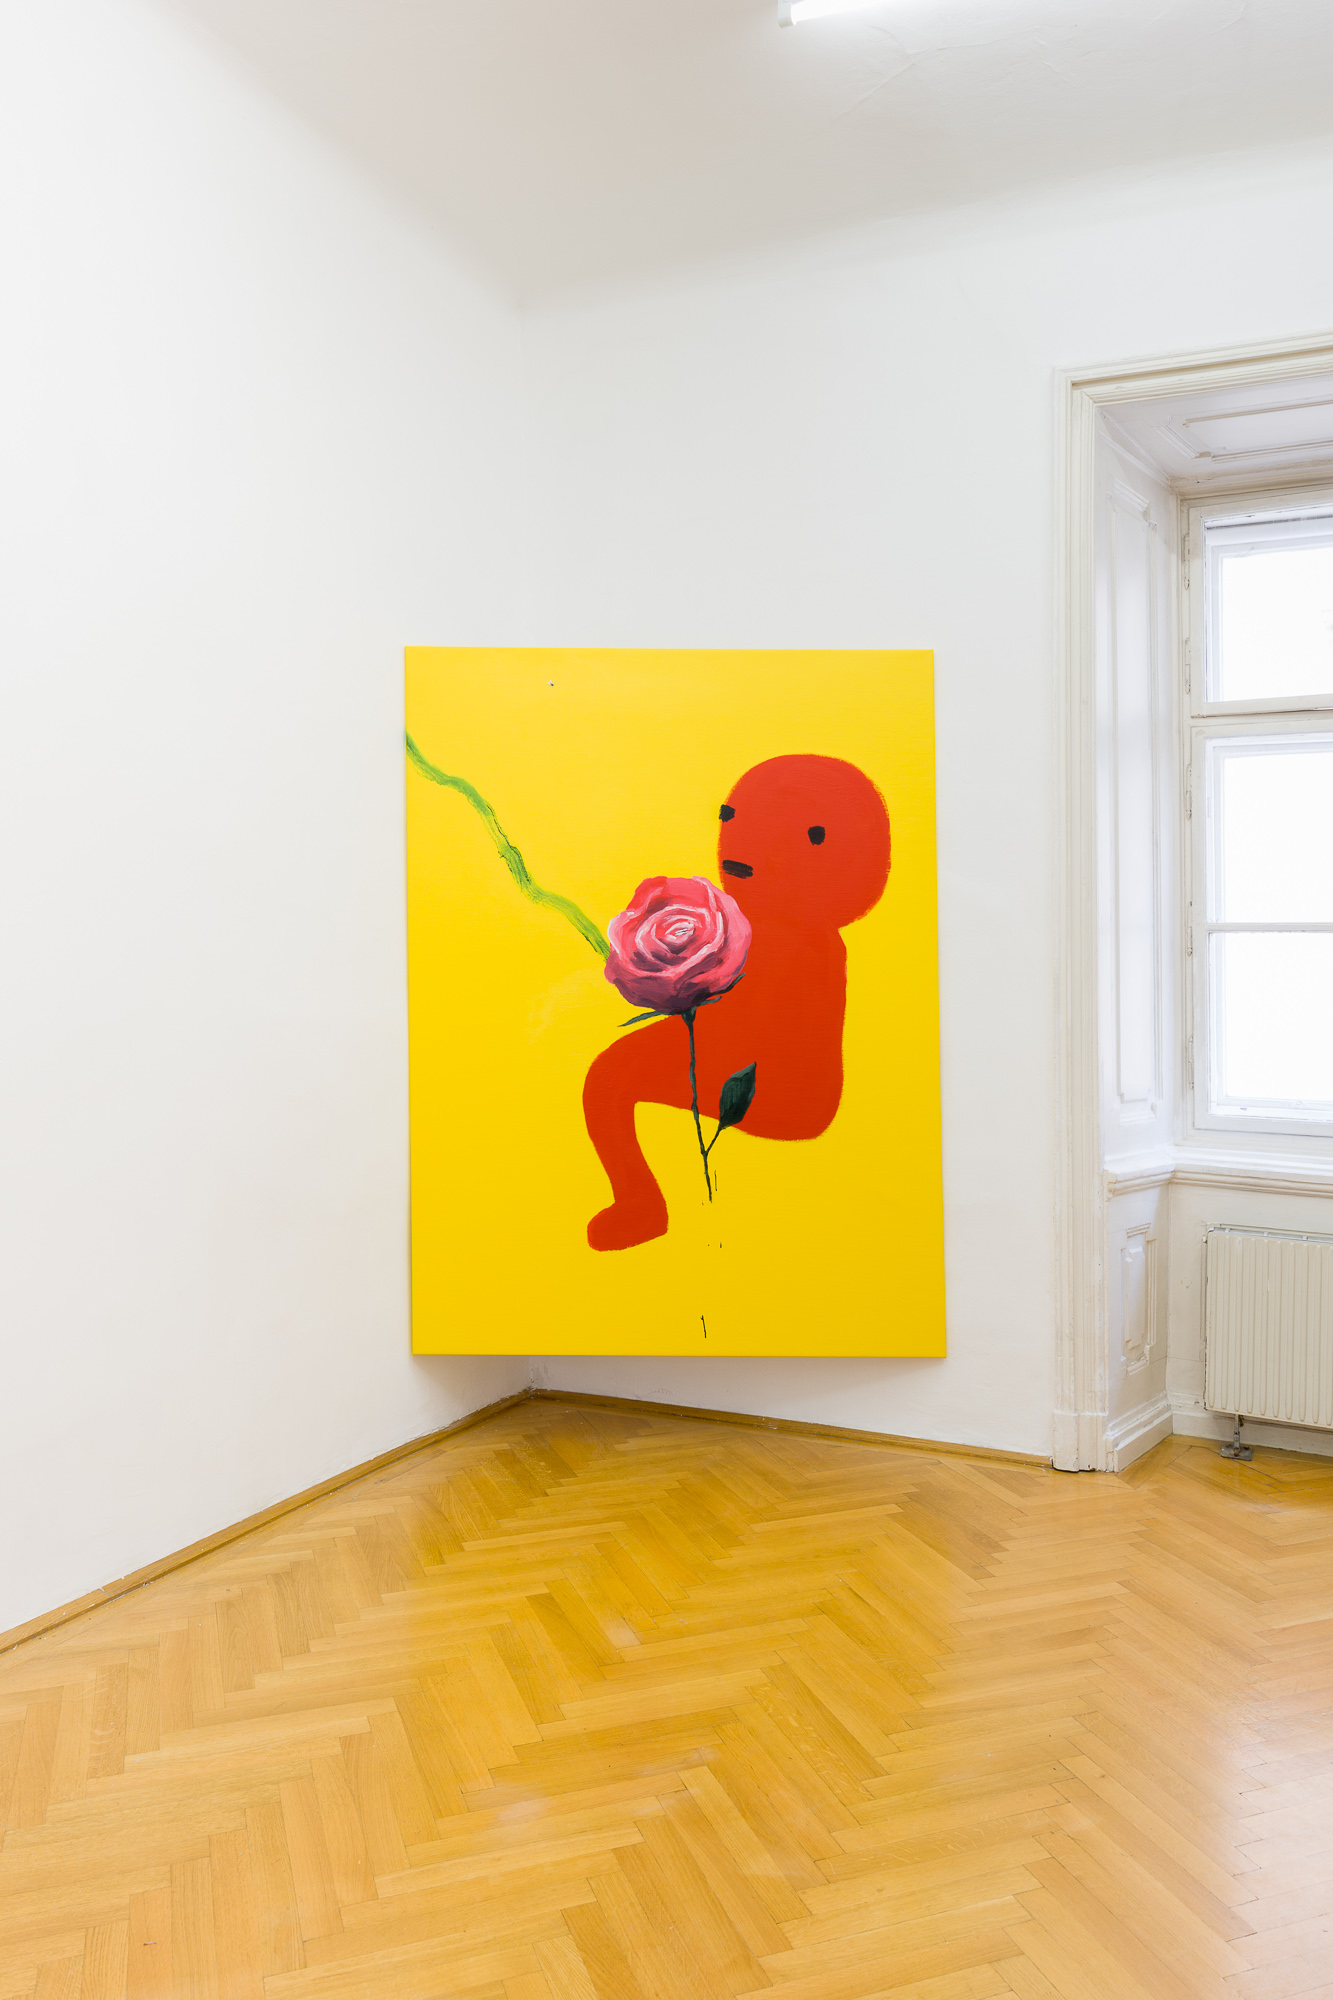 2018_09_15_Andrew Birk at Sort Vienna_by kunst-dokumentation.com_016_web.jpg